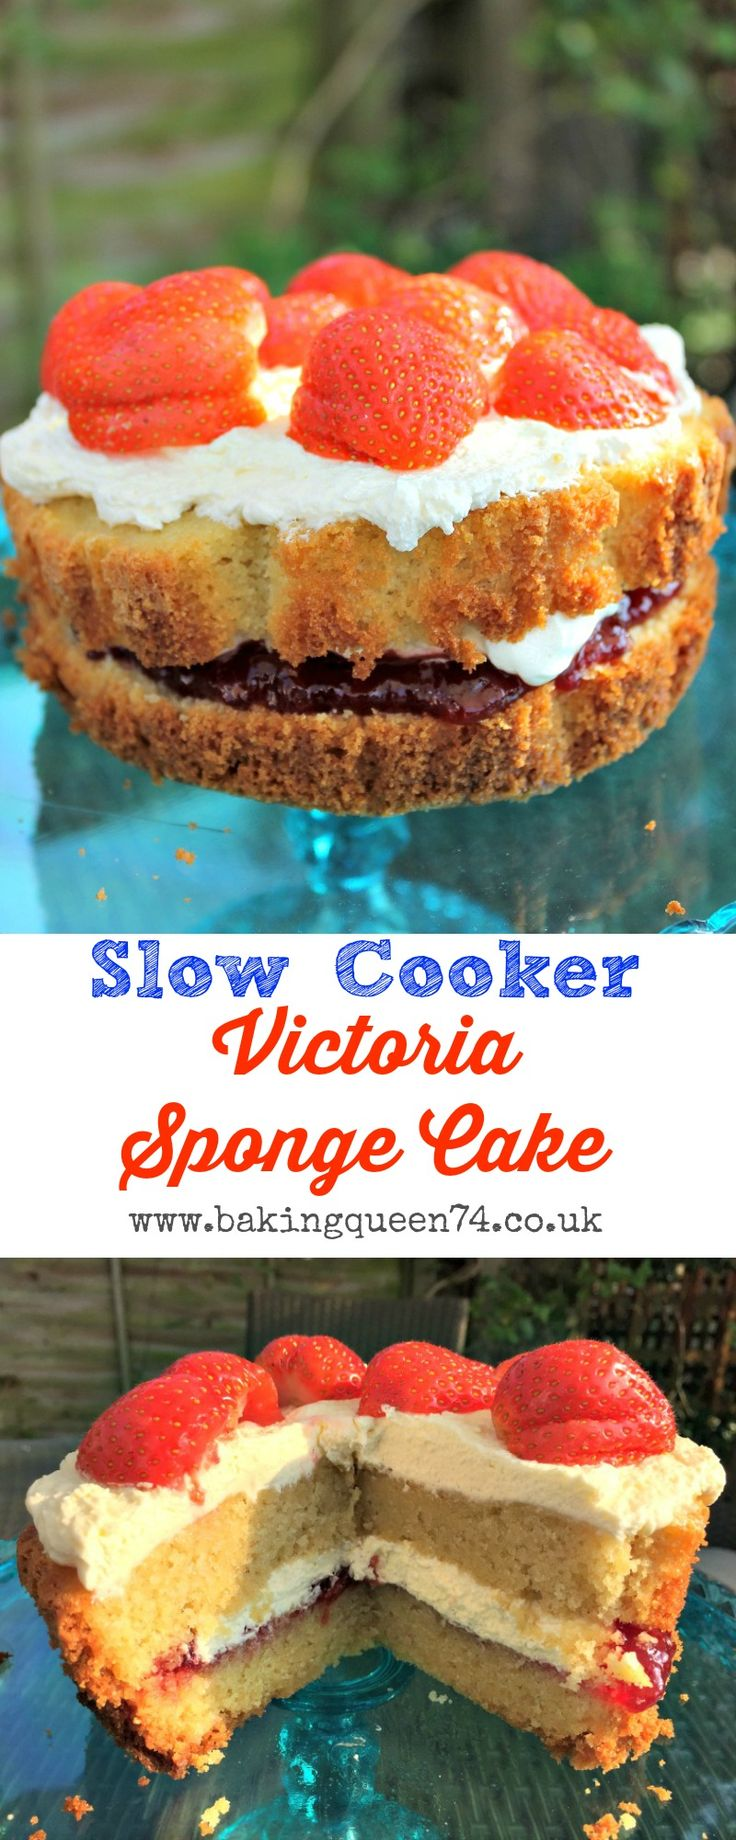 Ideal for the Queen's 90h birthday celebrations! Slow Cooker Victoria Sponge